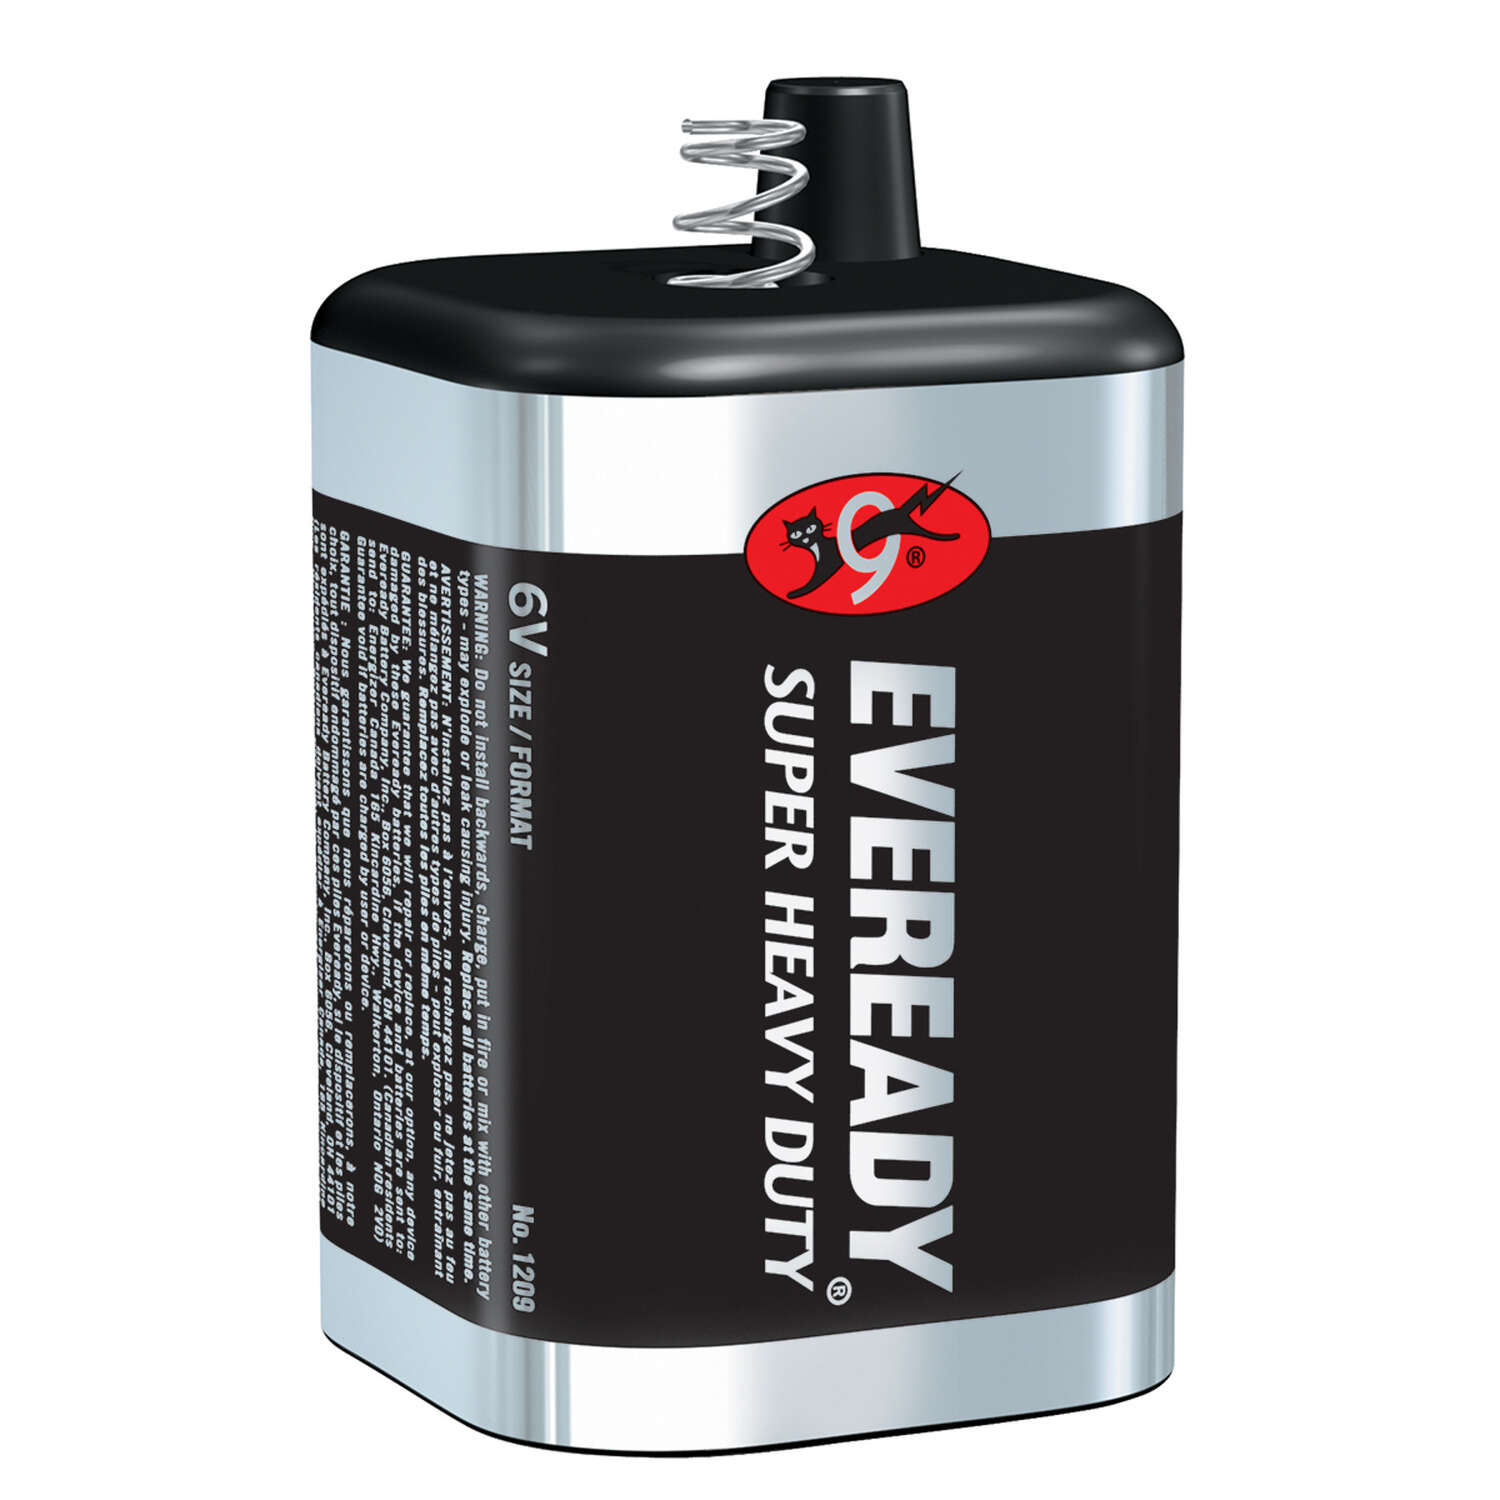 Energizer Eveready 6-Volt Zinc Carbon Lantern Battery 1 pk Bulk